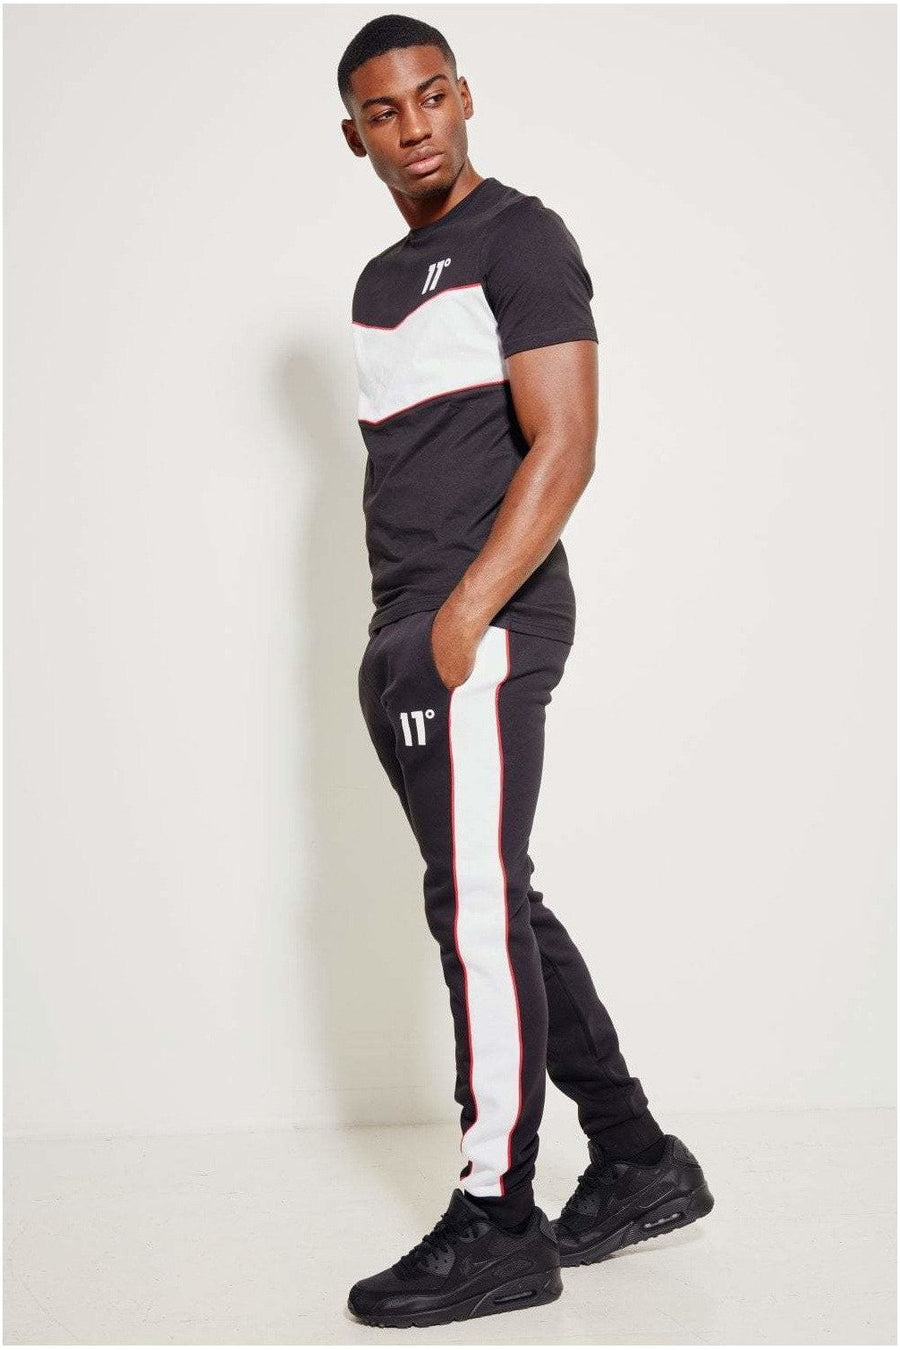 11 Degrees Colour Block Piped Joggers Regular Fit - Black / White / Goji Berry Red